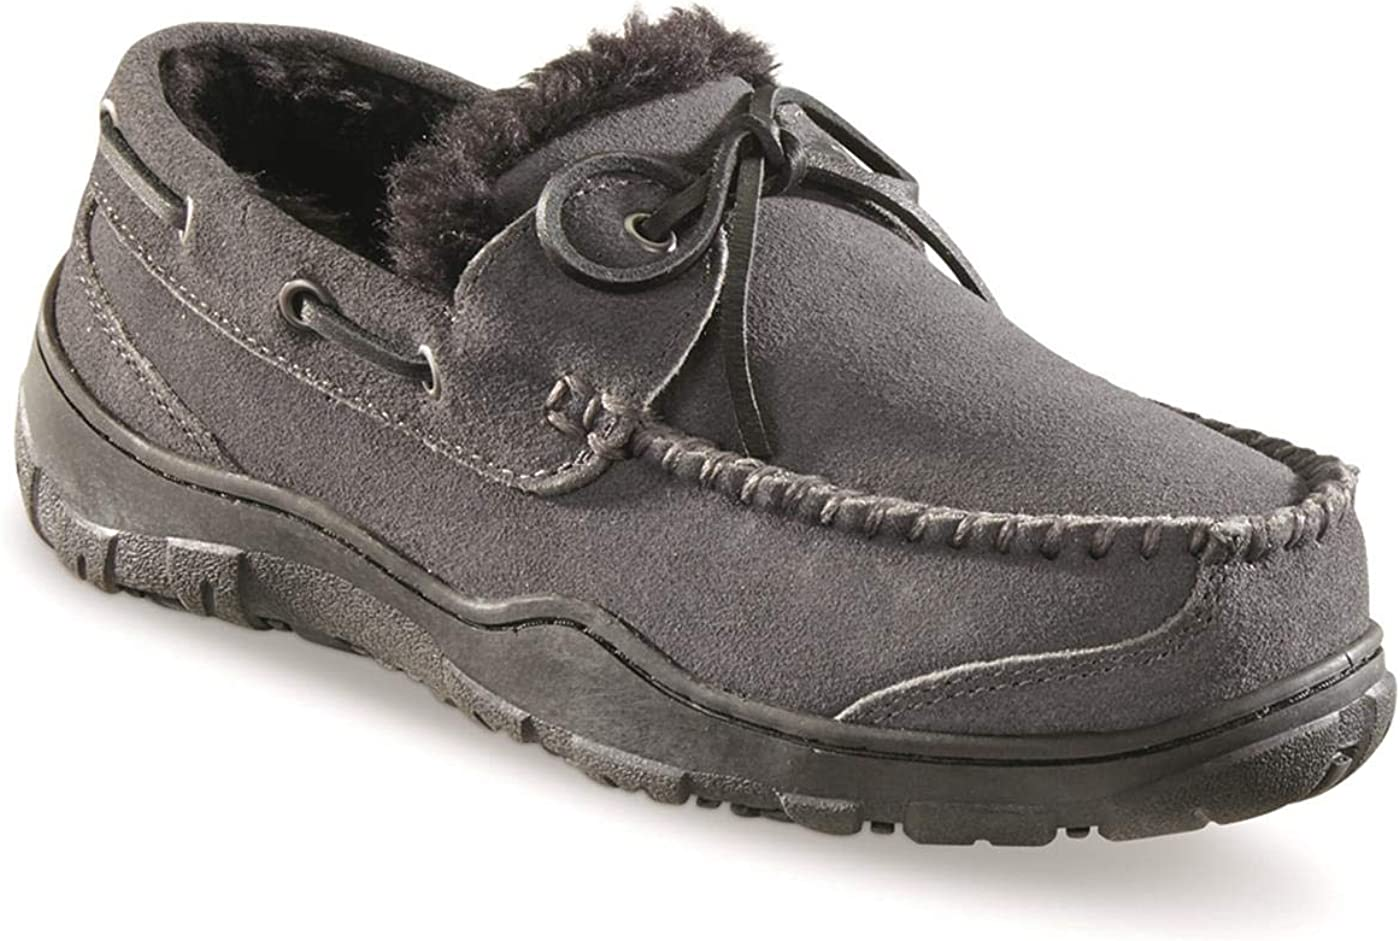 Guide Gear Men's Now on sale Suede Max 75% OFF Slippers Moc Tie